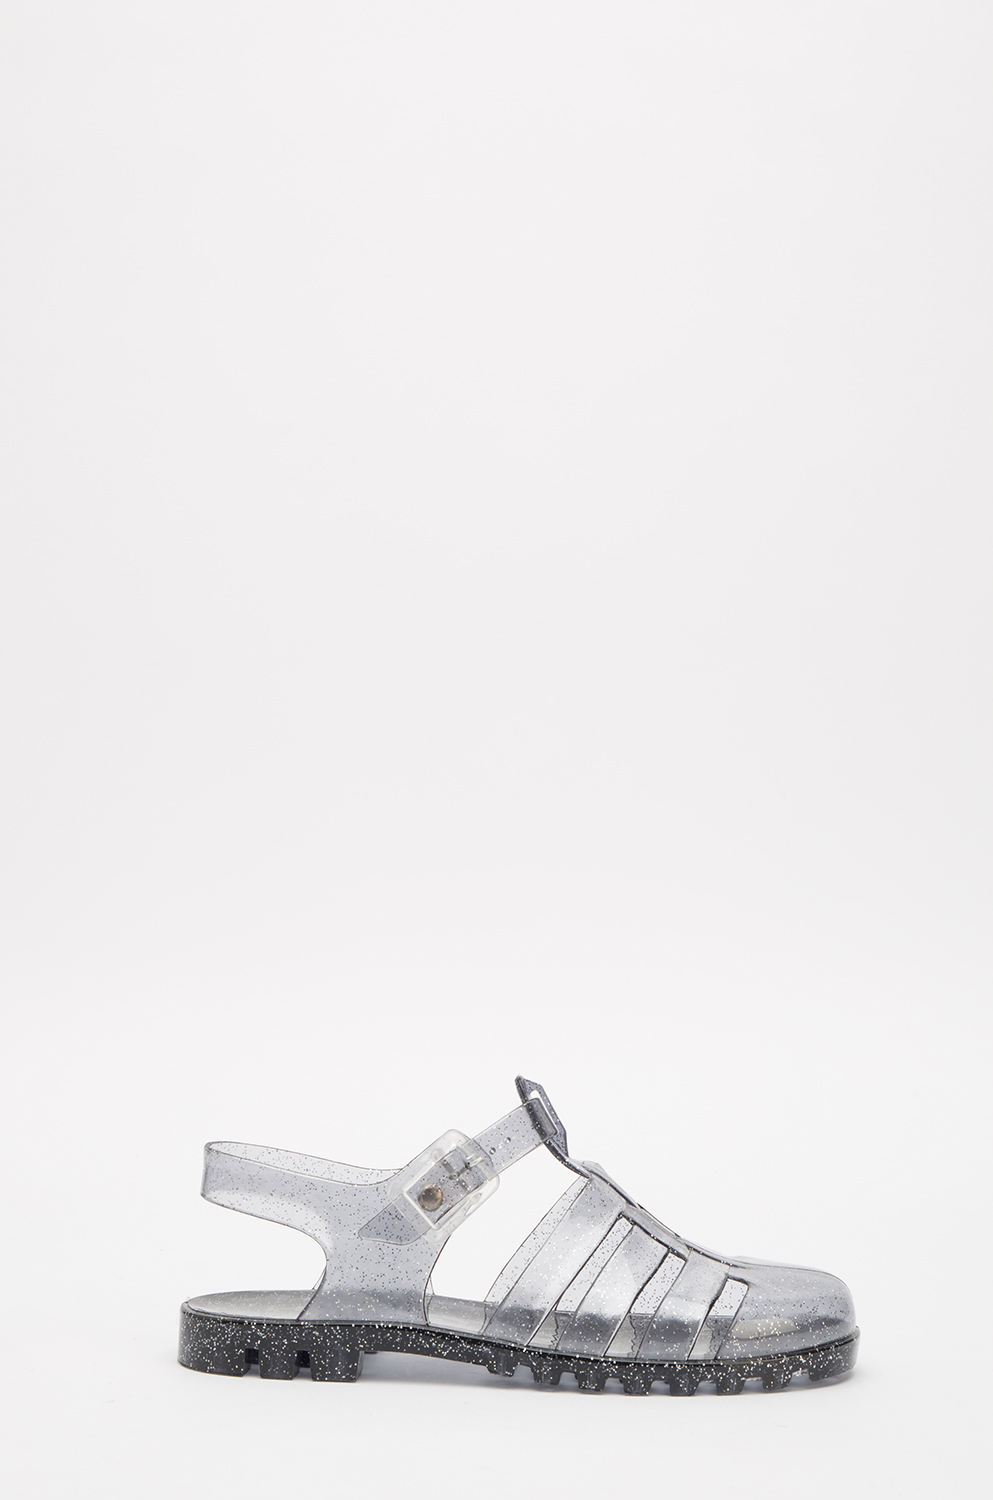 097dd9f73109 Strappy Jelly Sandals - Just £5